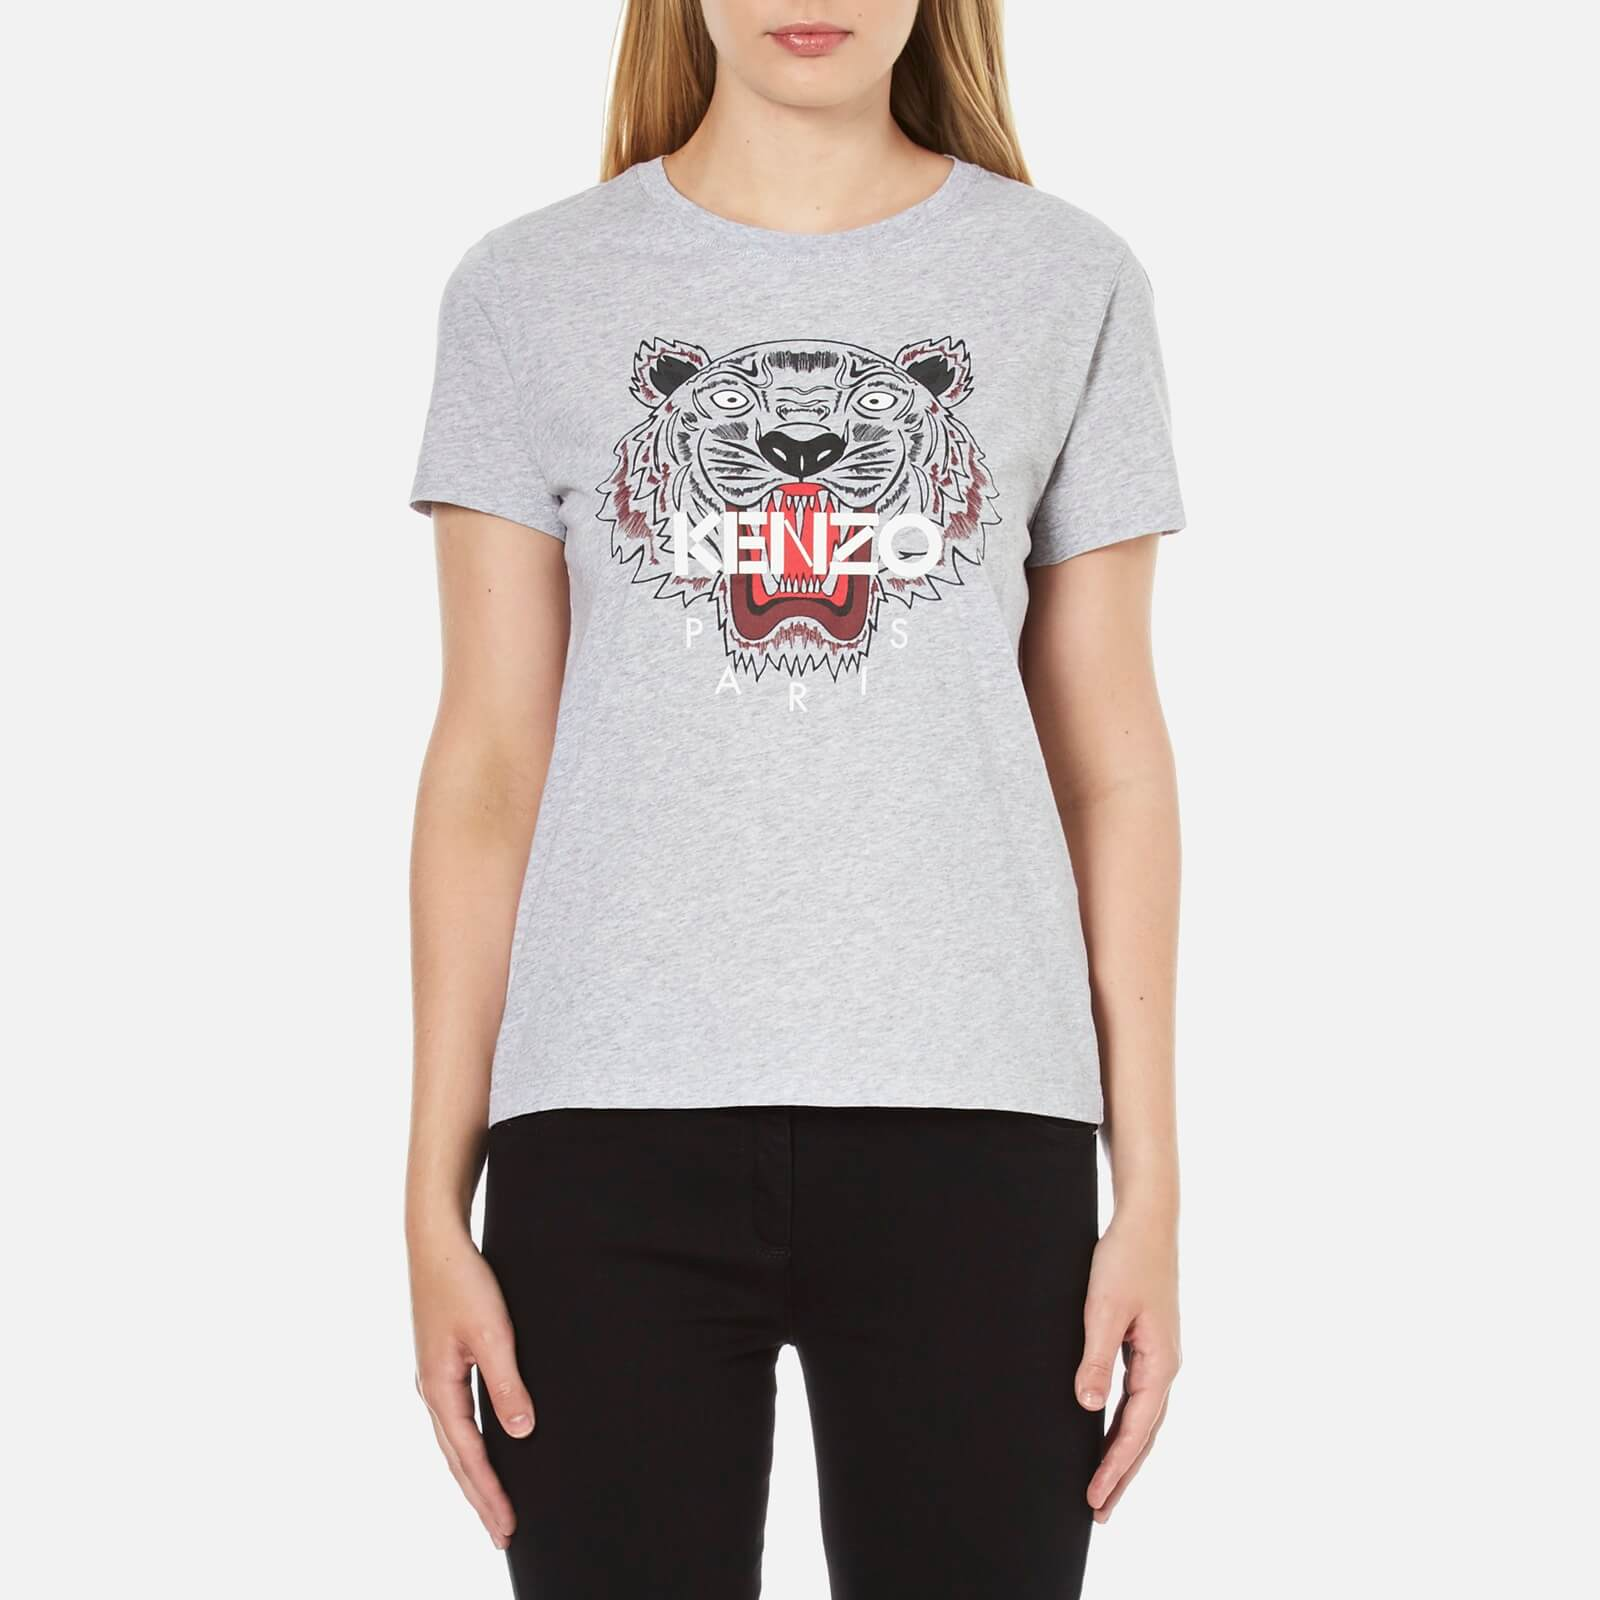 1c50d095d KENZO Women's Tiger T-Shirt - Light Grey - Free UK Delivery over £50